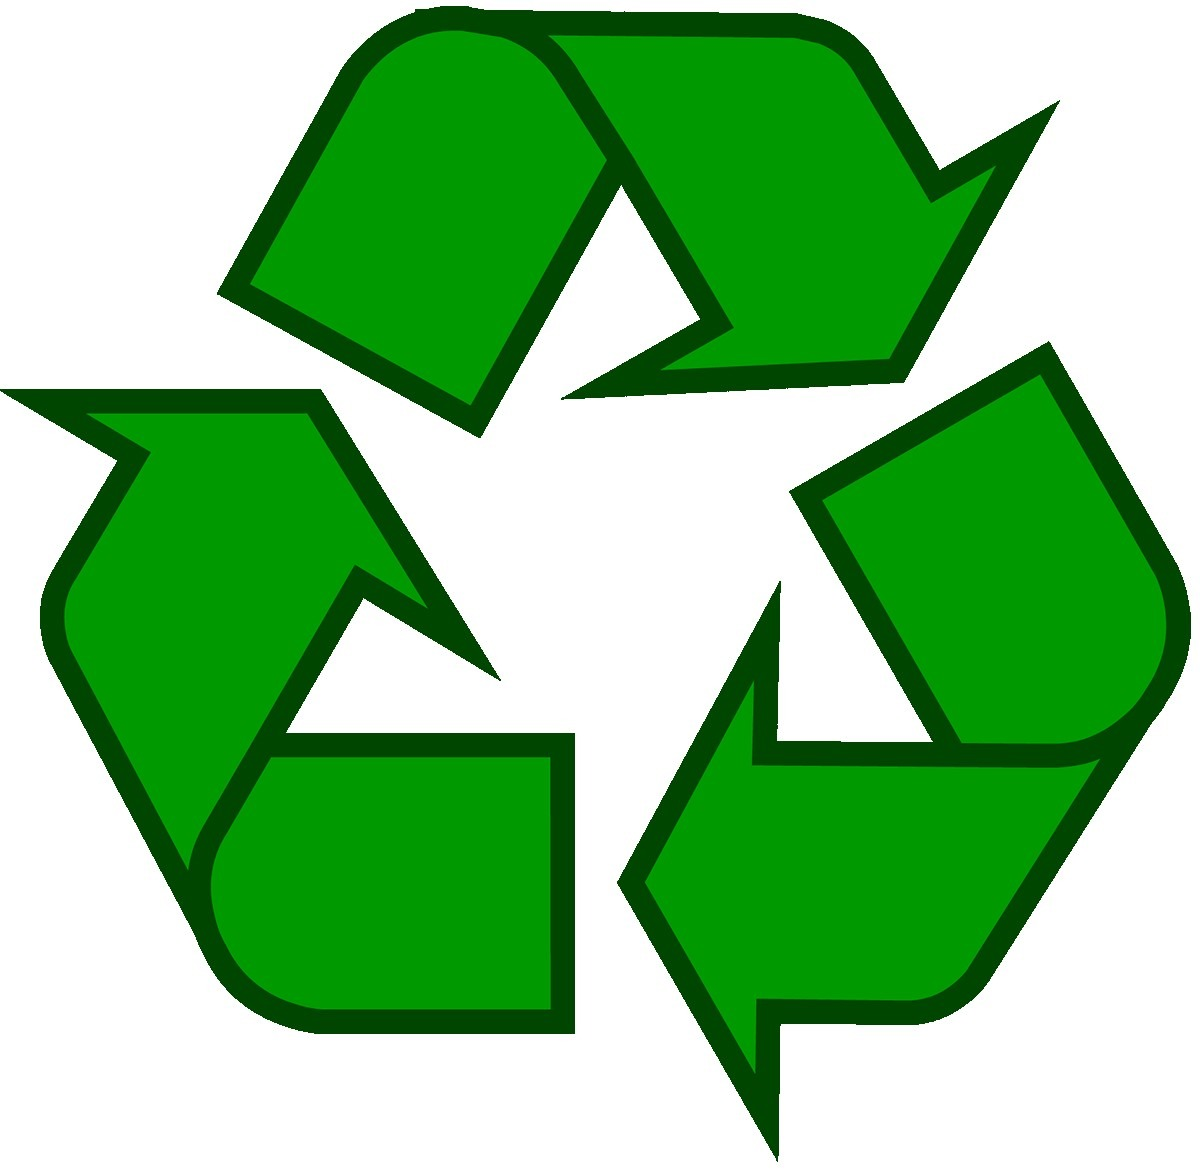 Recycling Symbol Icon Outline Solid Dark Green For Printable